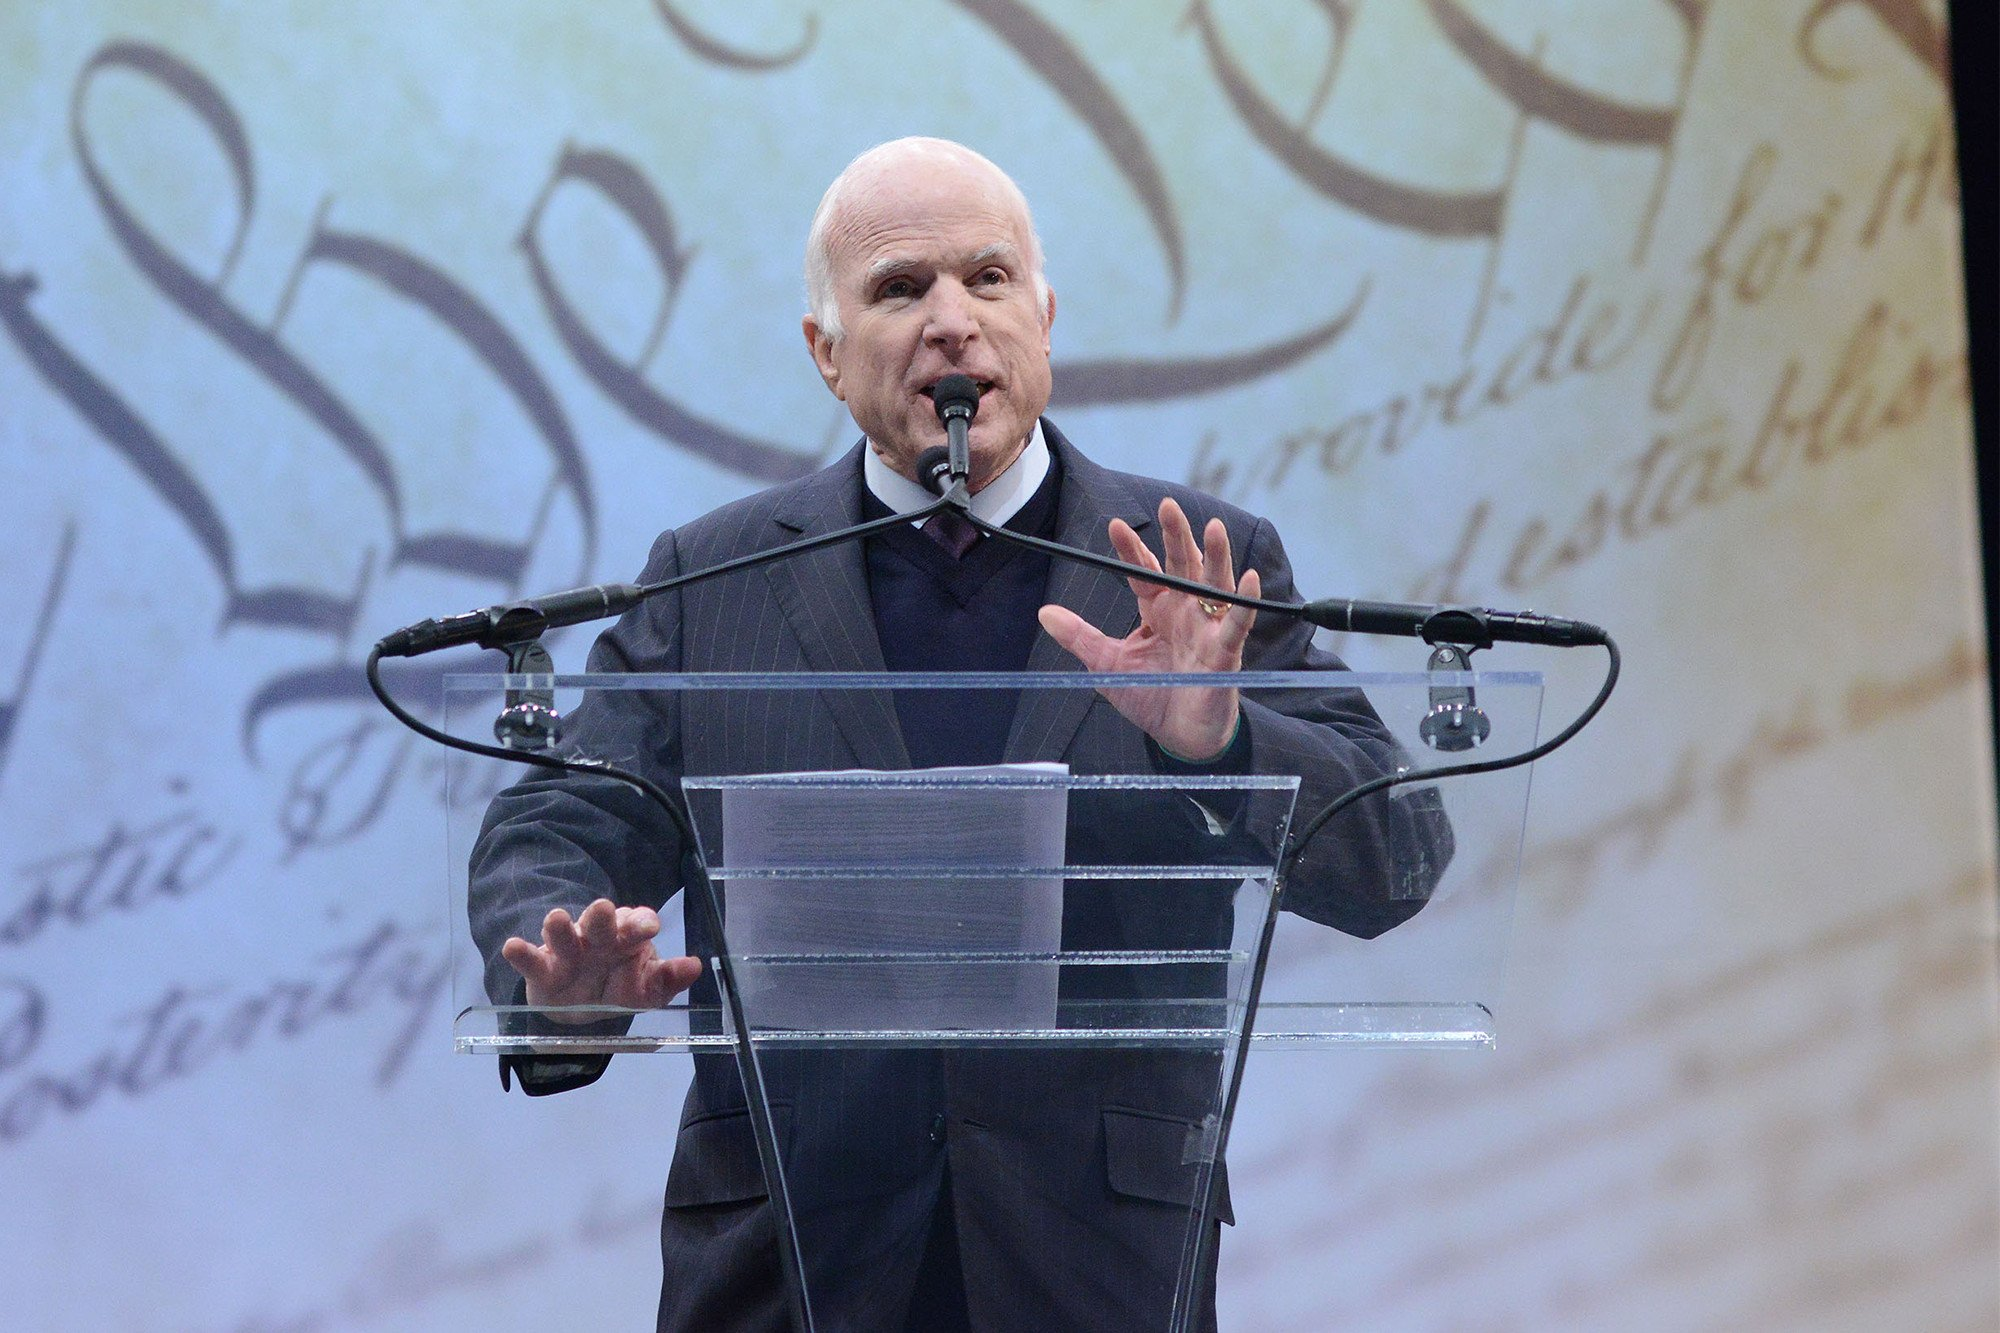 Memorial services for John McCain set for this weekend